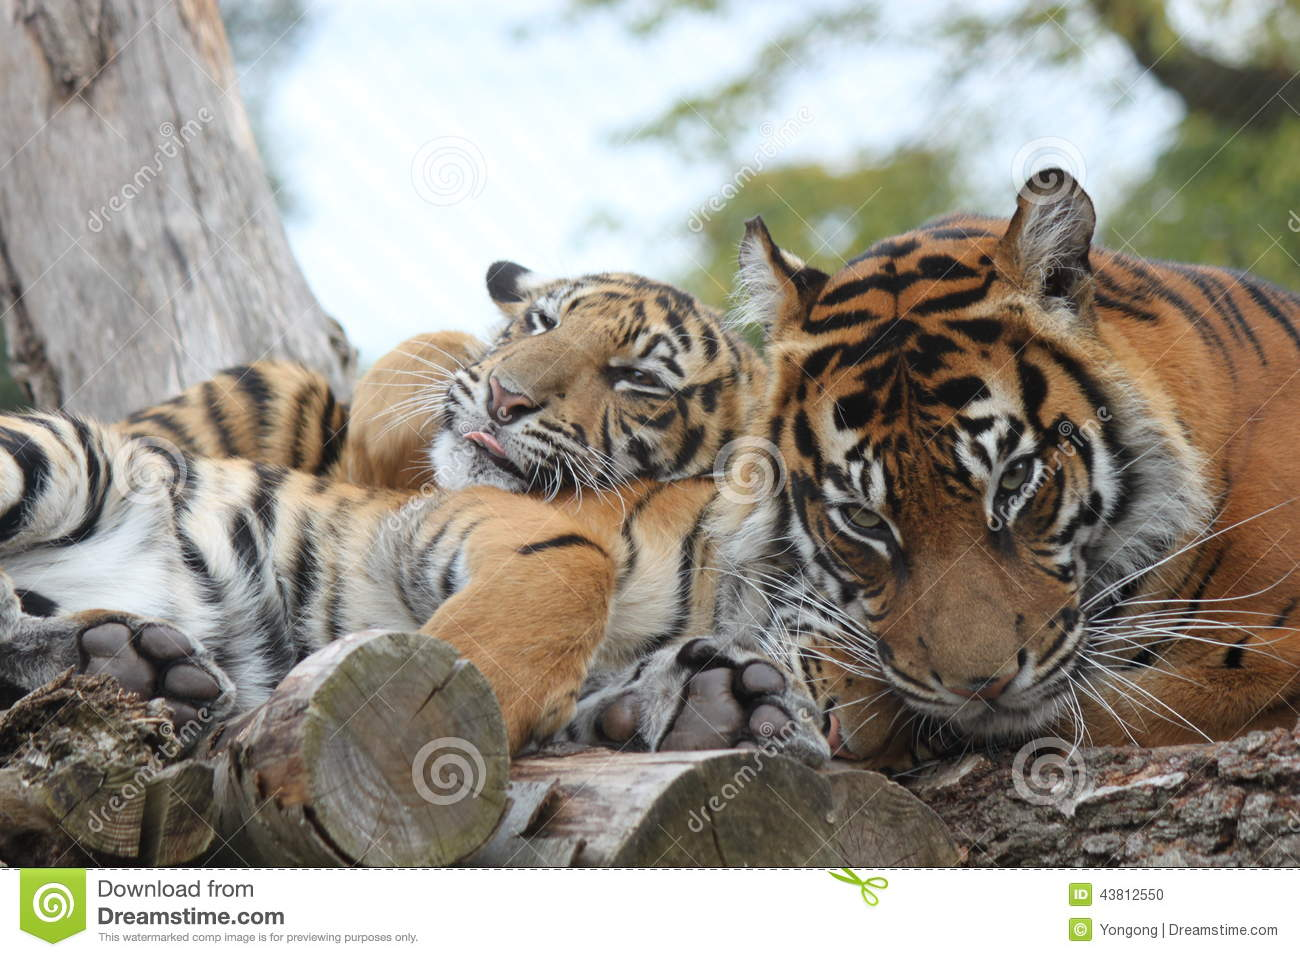 Tiger Nap Stock Image | CartoonDealer.com #23923423